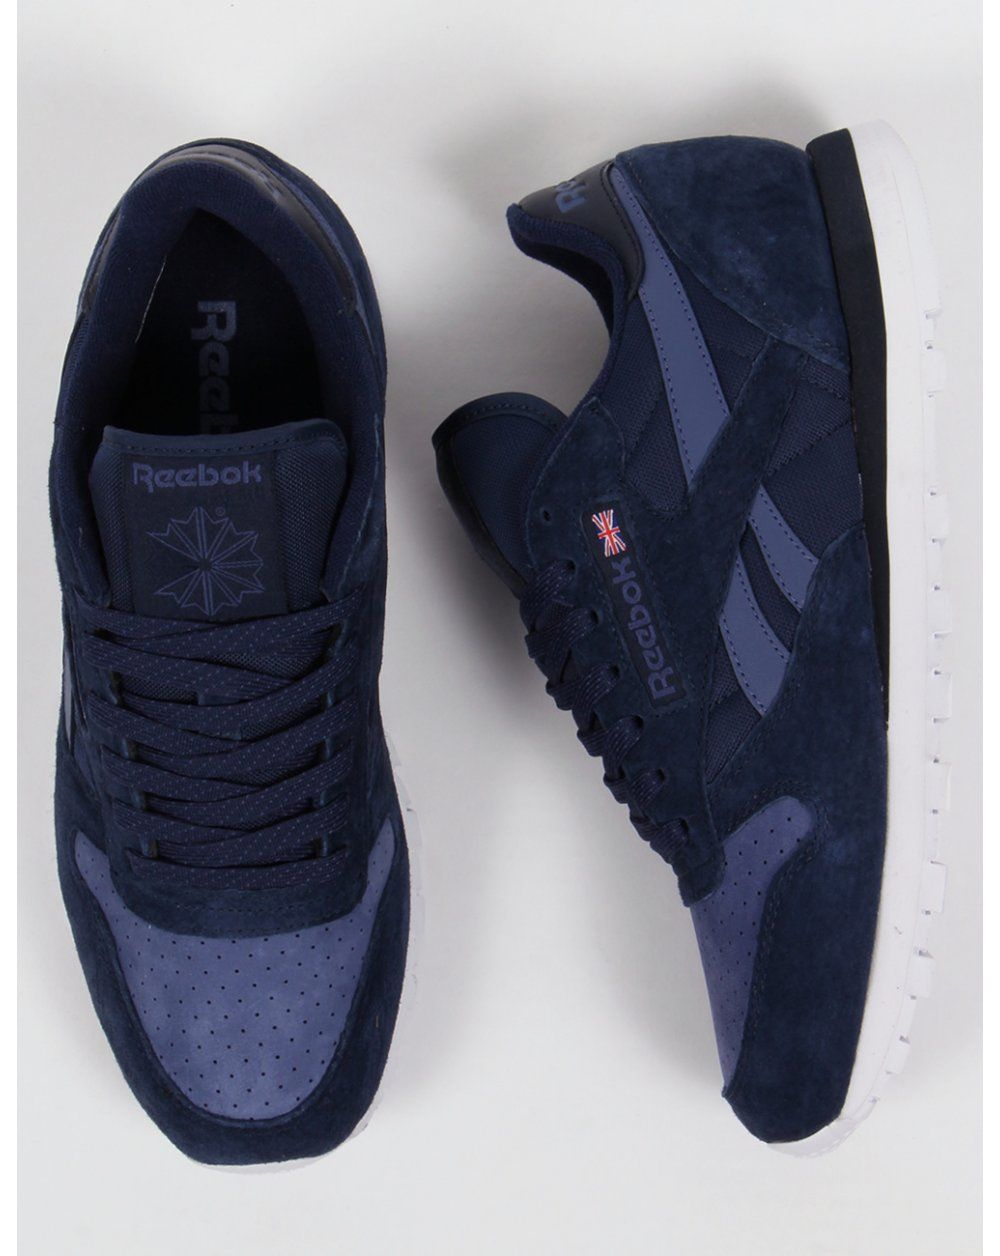 35fe4797ab0 Reebok Classic Leather NP Trainers Navy Midnight Blue